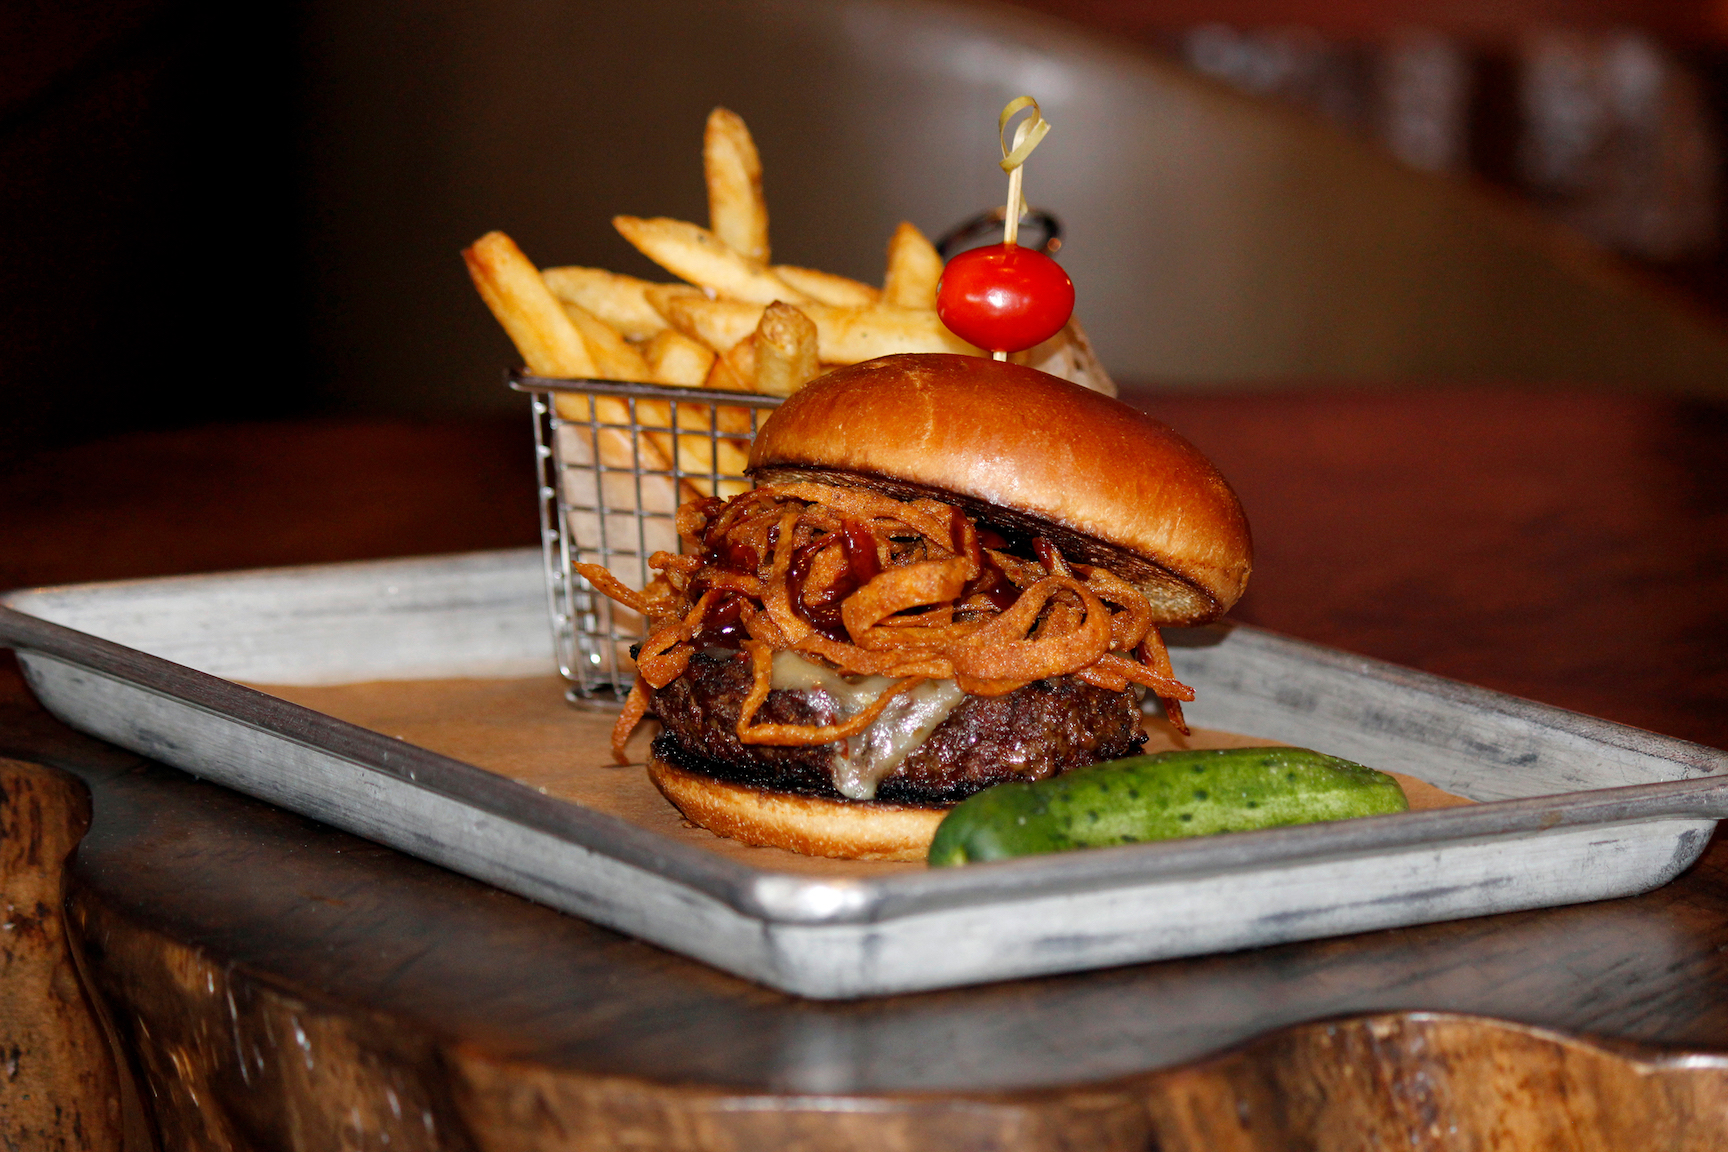 Bobby V's handcrafted burgers